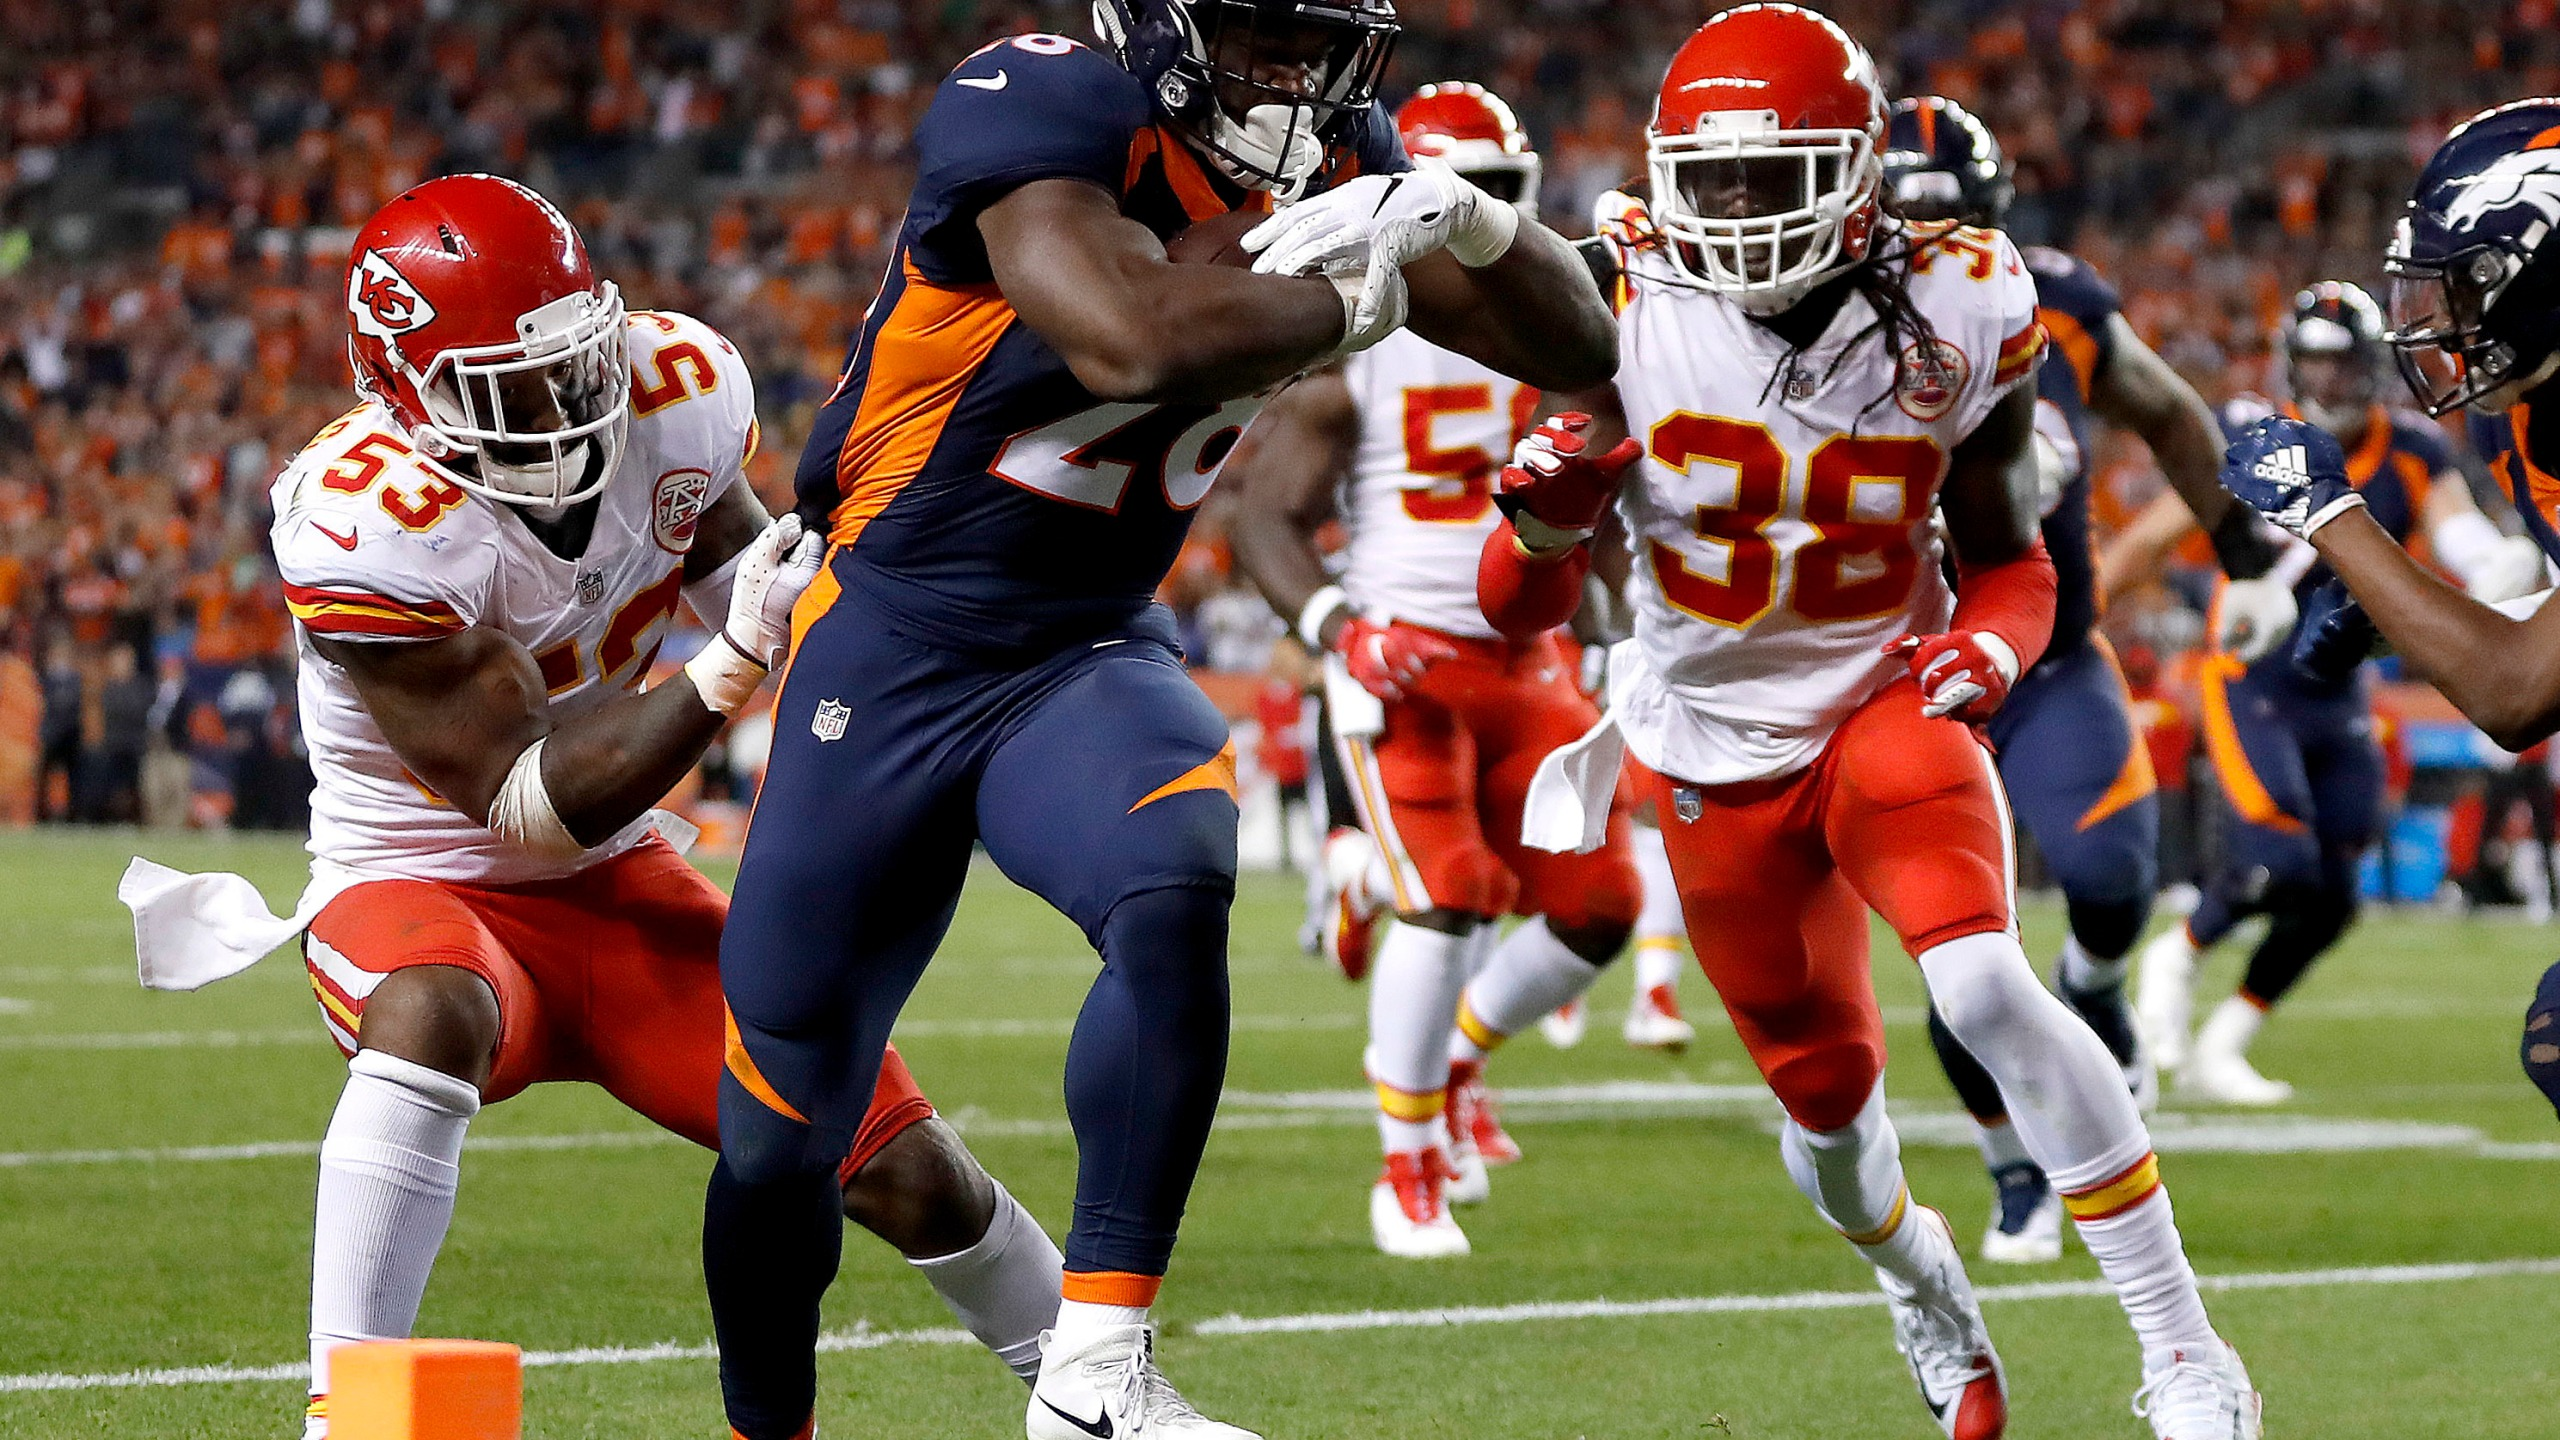 Chiefs linebacker Anthony Hitchens 53 can't stop Broncos running back Royce Freeman 28 from scoring a touchdown as defensive back Ron Parker 38